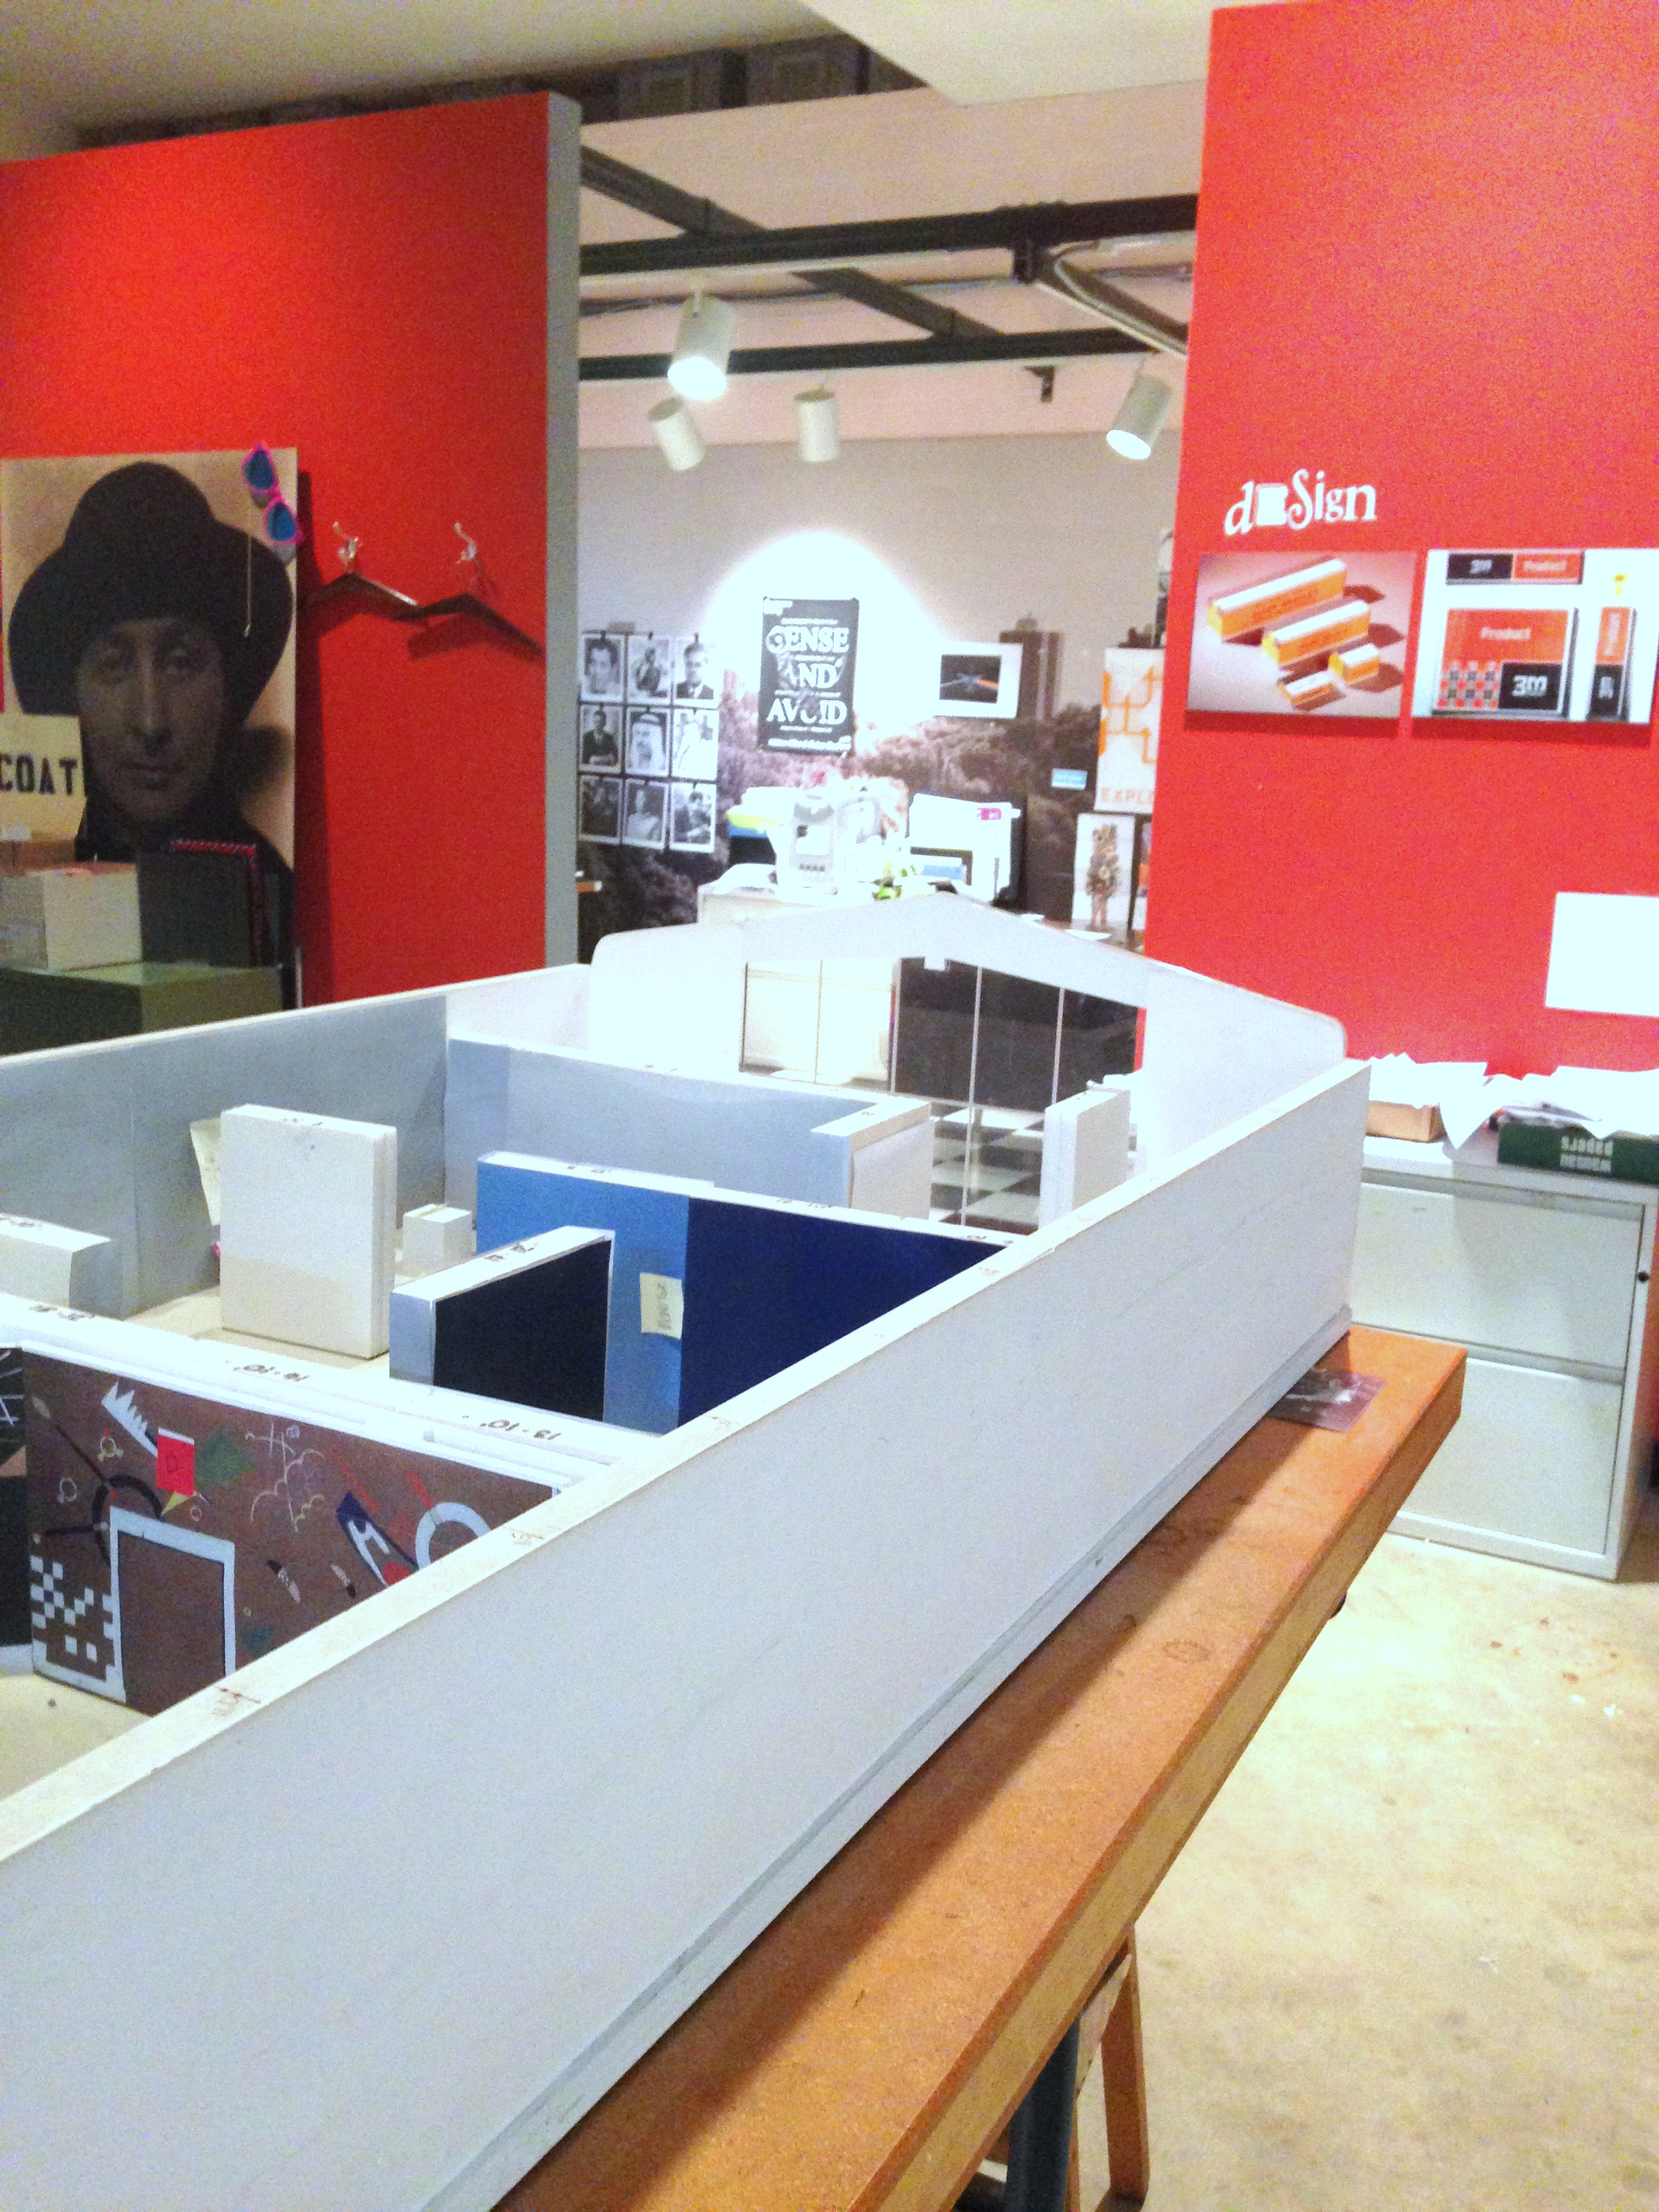 View of the exhibition model. Photo by the author